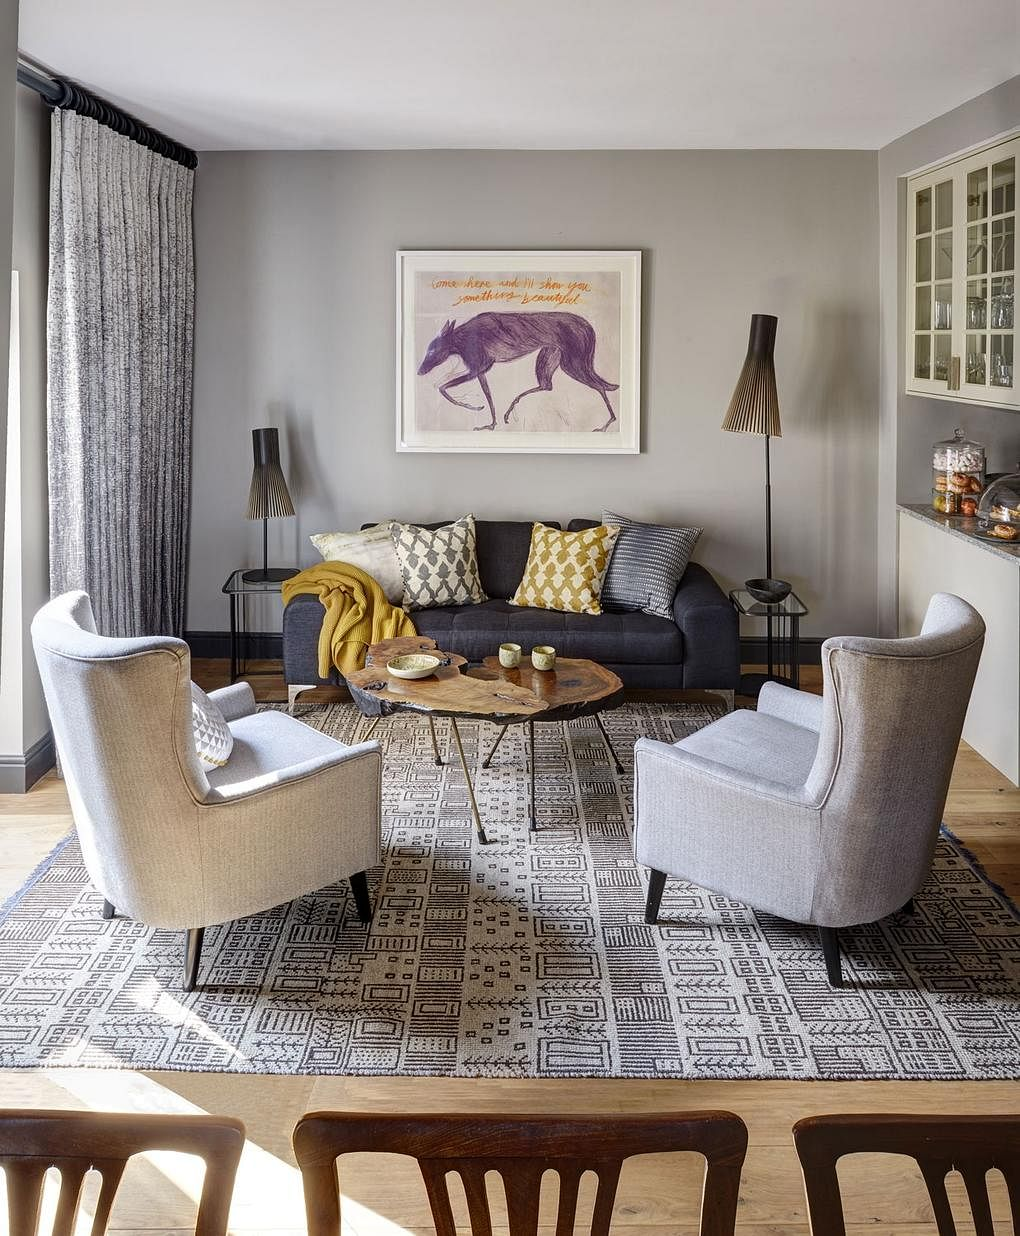 House Tour: A cosy duplex home combining contemporary and ...